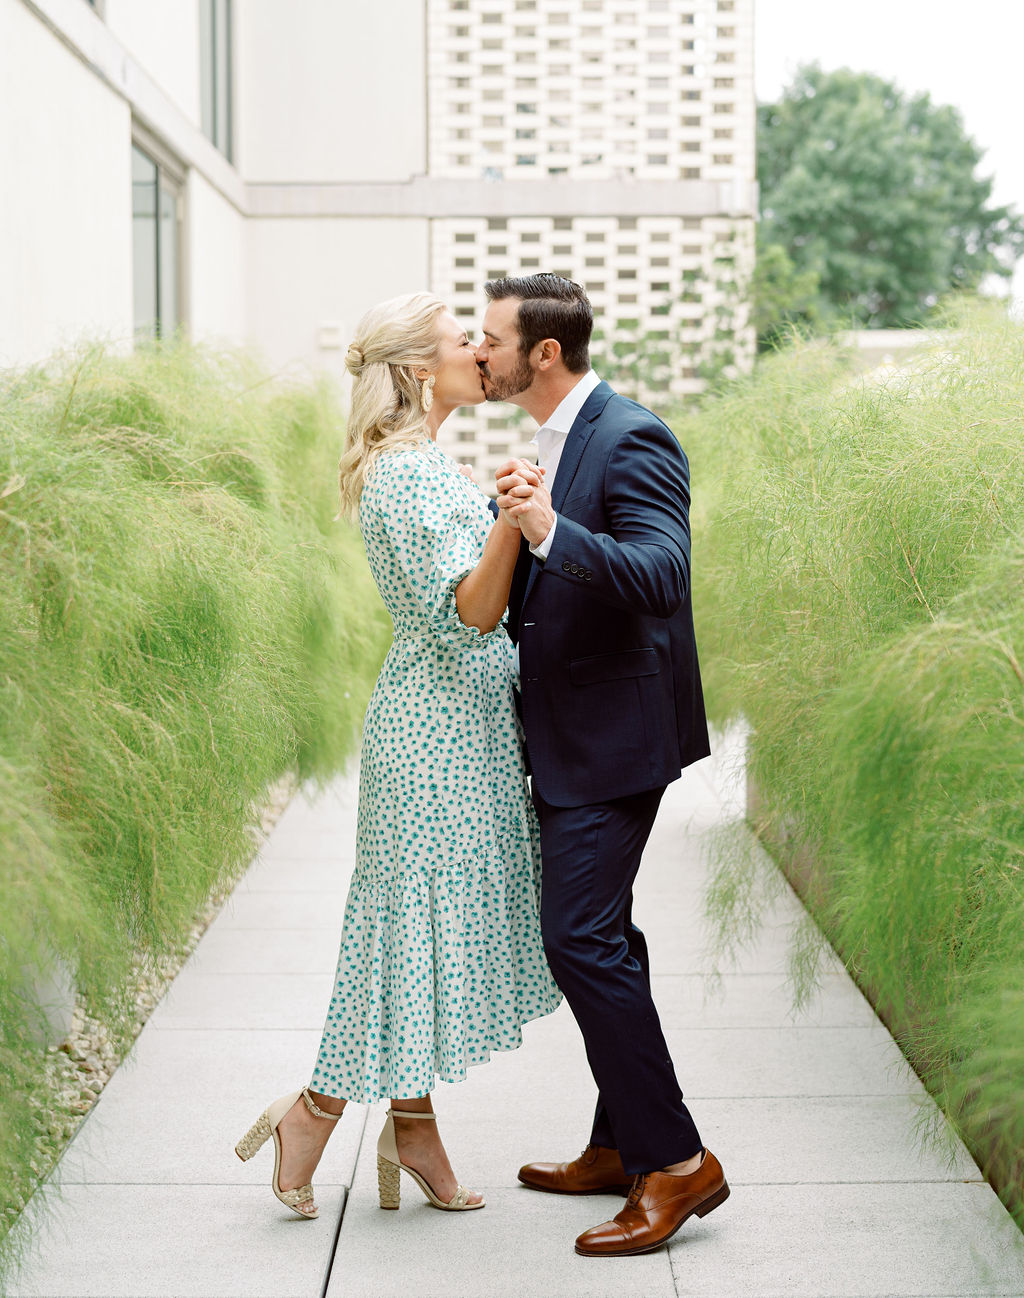 Austin-Elopement-Intimate-Wedding-Photographer-South-Congress-Hotel-Engagement-Session-6.jpg